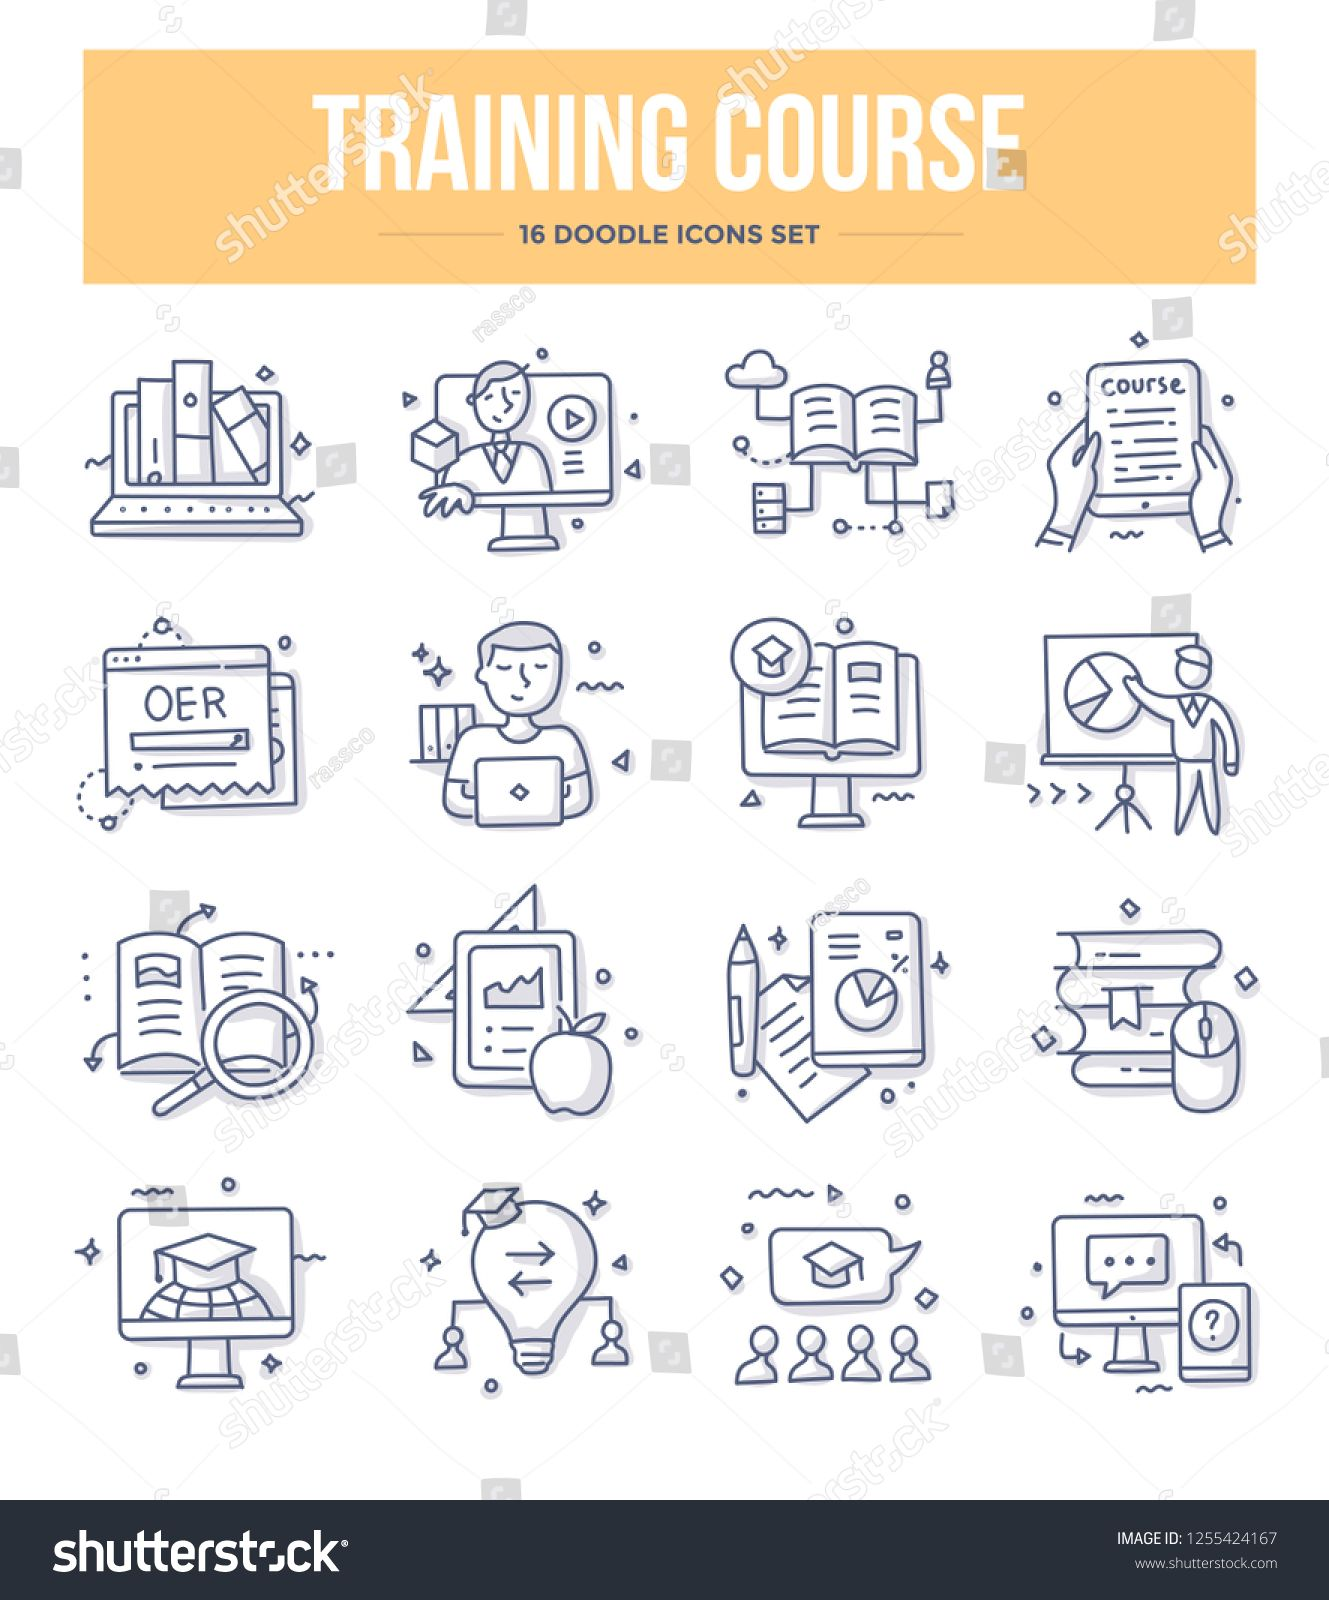 Training Course And Online Education Doodle Icons Collection E